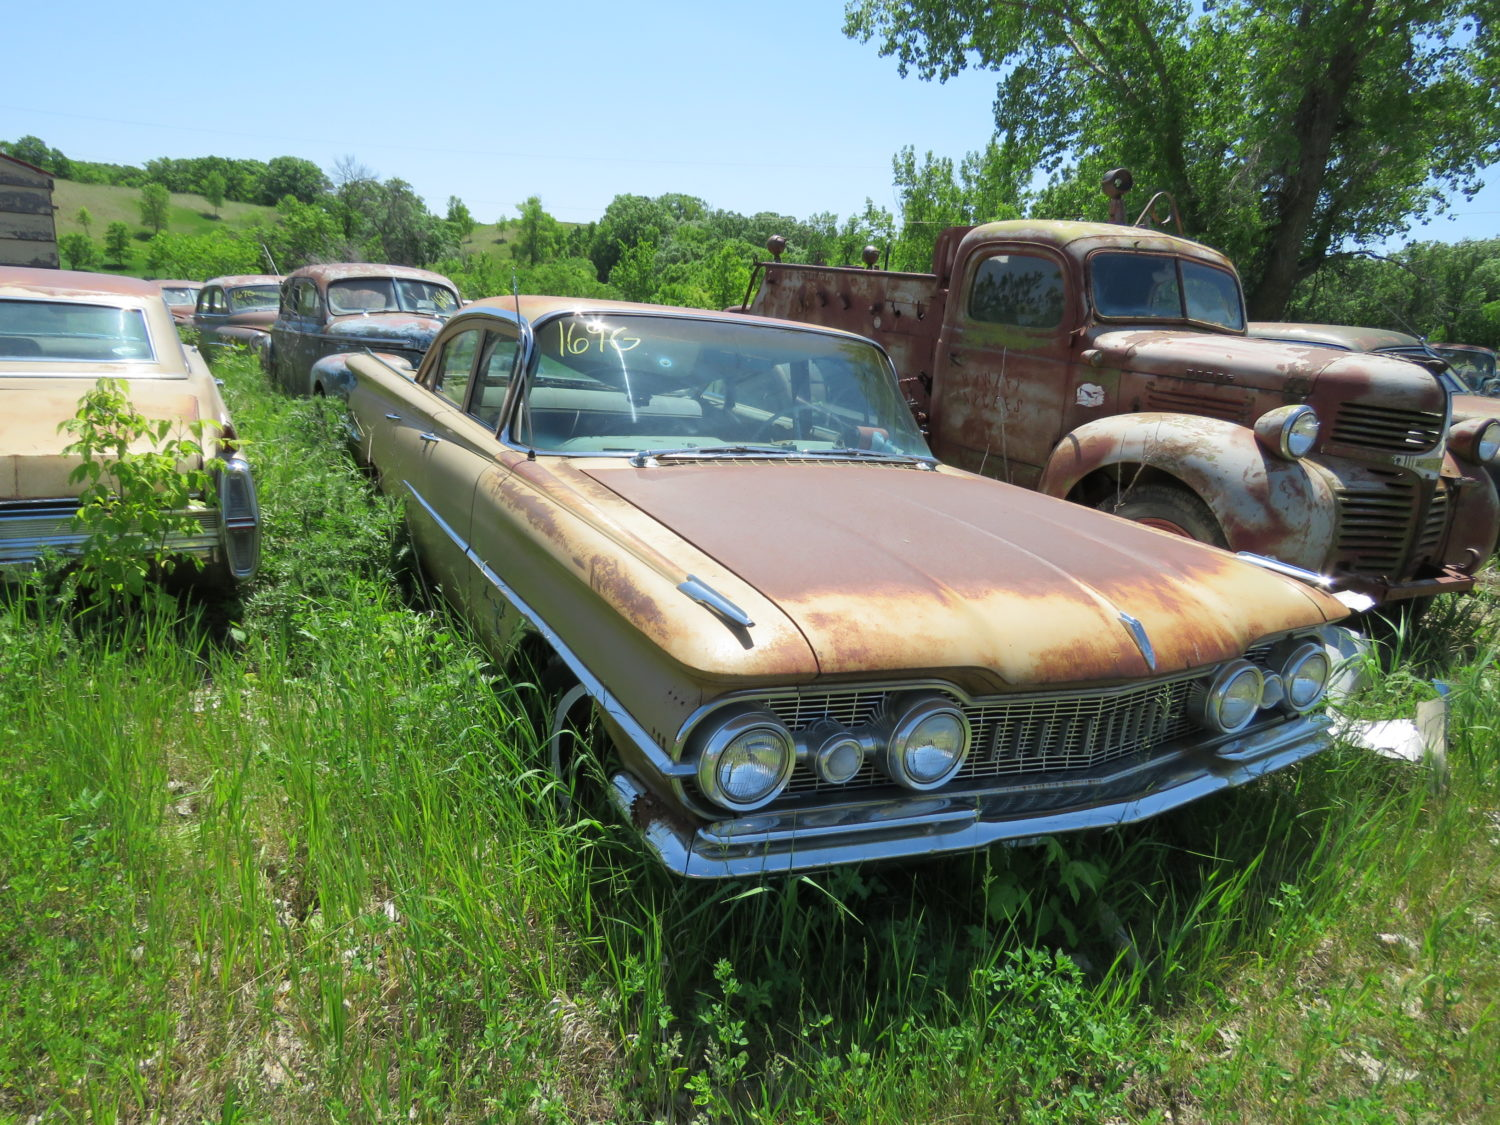 Shop Equipment, Tools, 4-Wheeler, Household & handful of Collector Cars- James Graham Estate - image 7